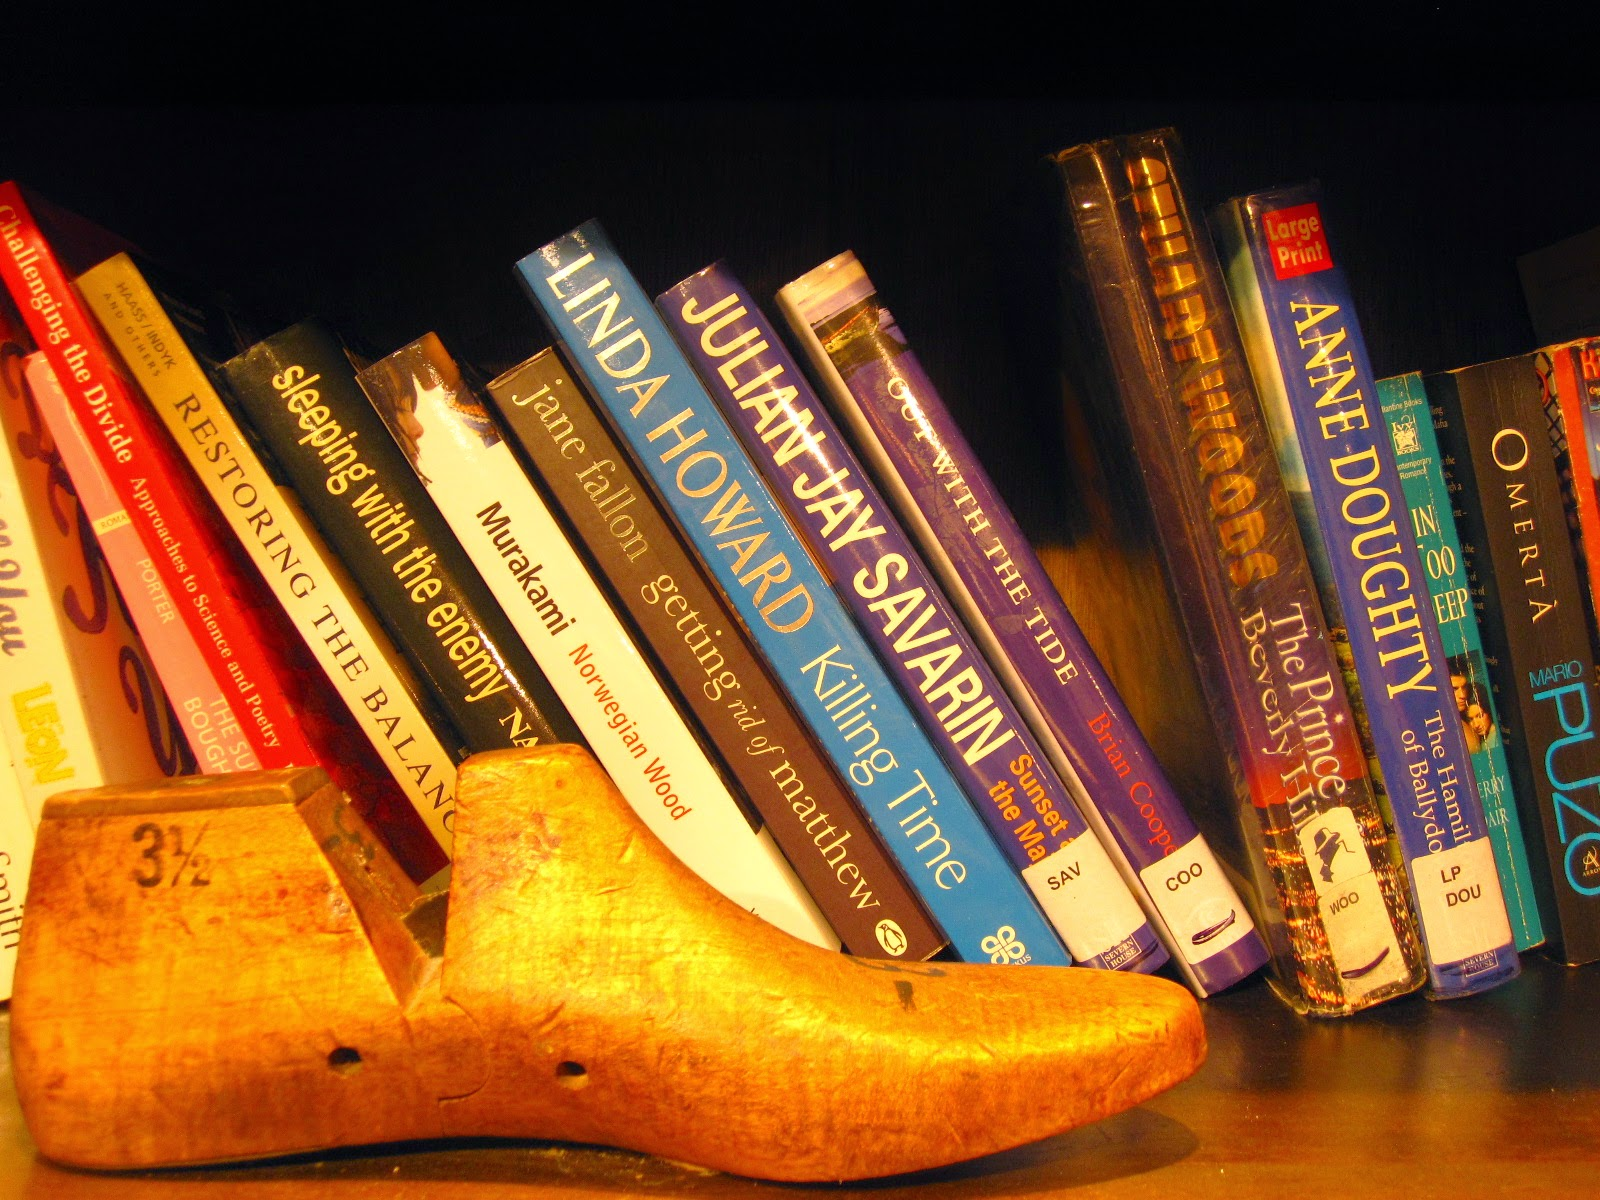 Vintage shoe last in front of a shelf of books at The Little Library in Melbourne Central.